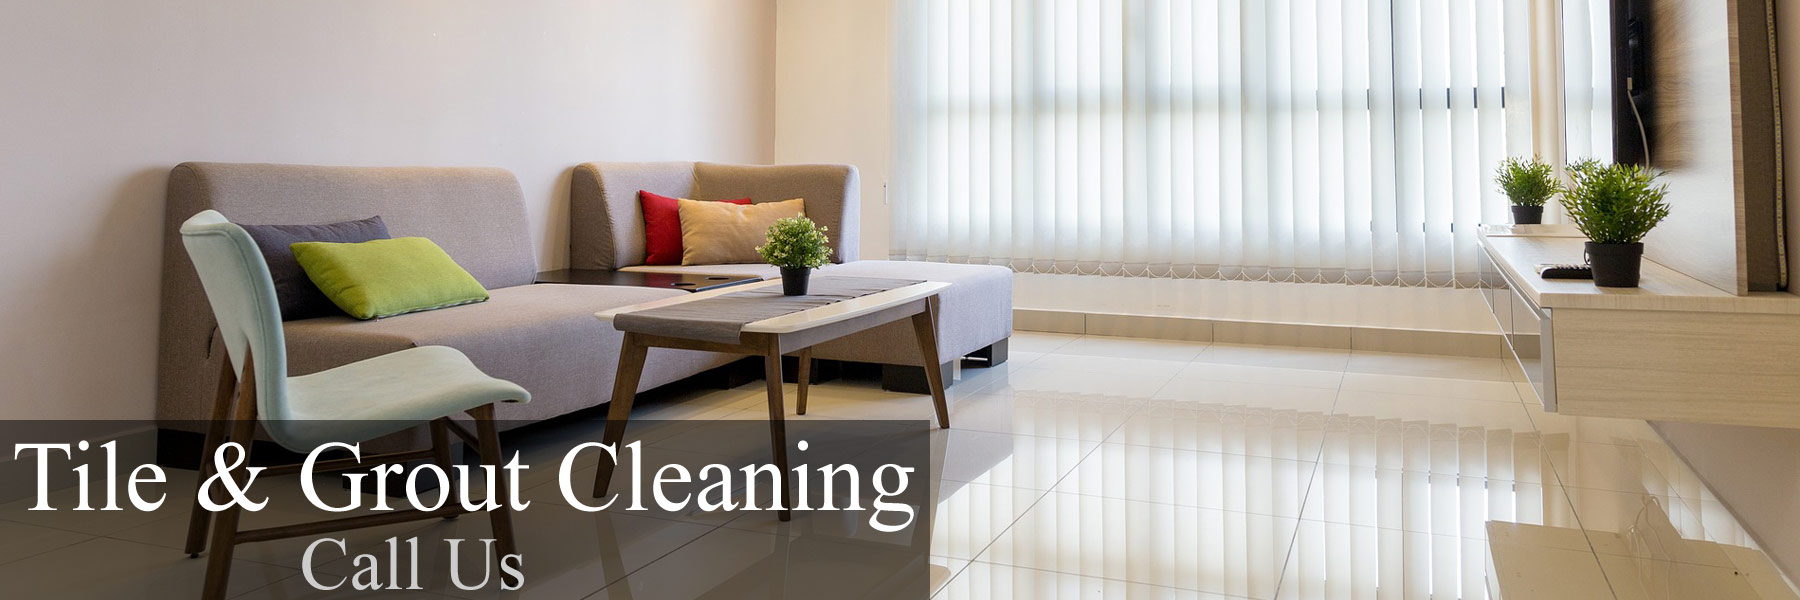 Tile-&-Grout-Cleaning_slider